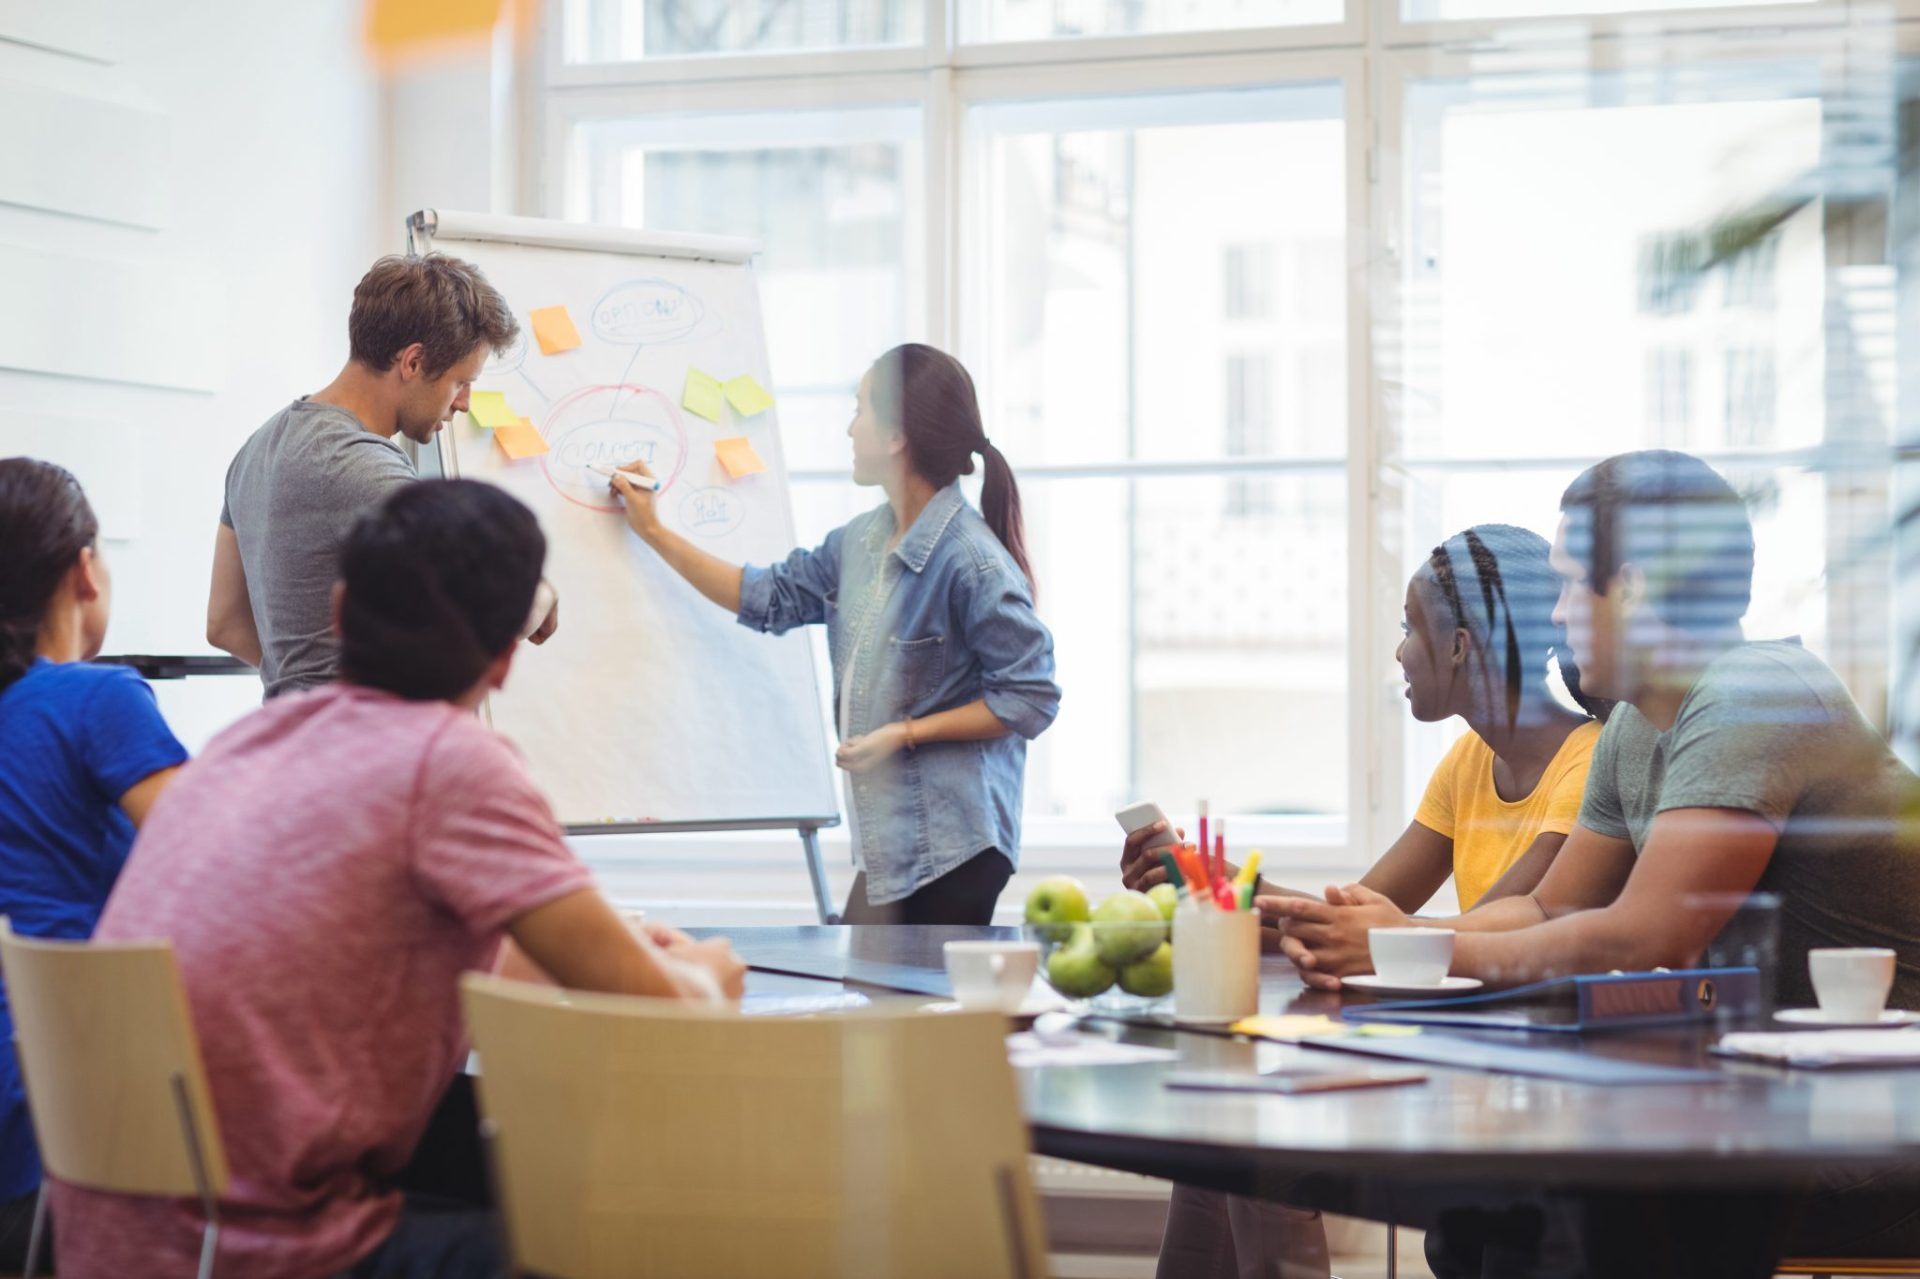 IT Management: how to keep your team productive